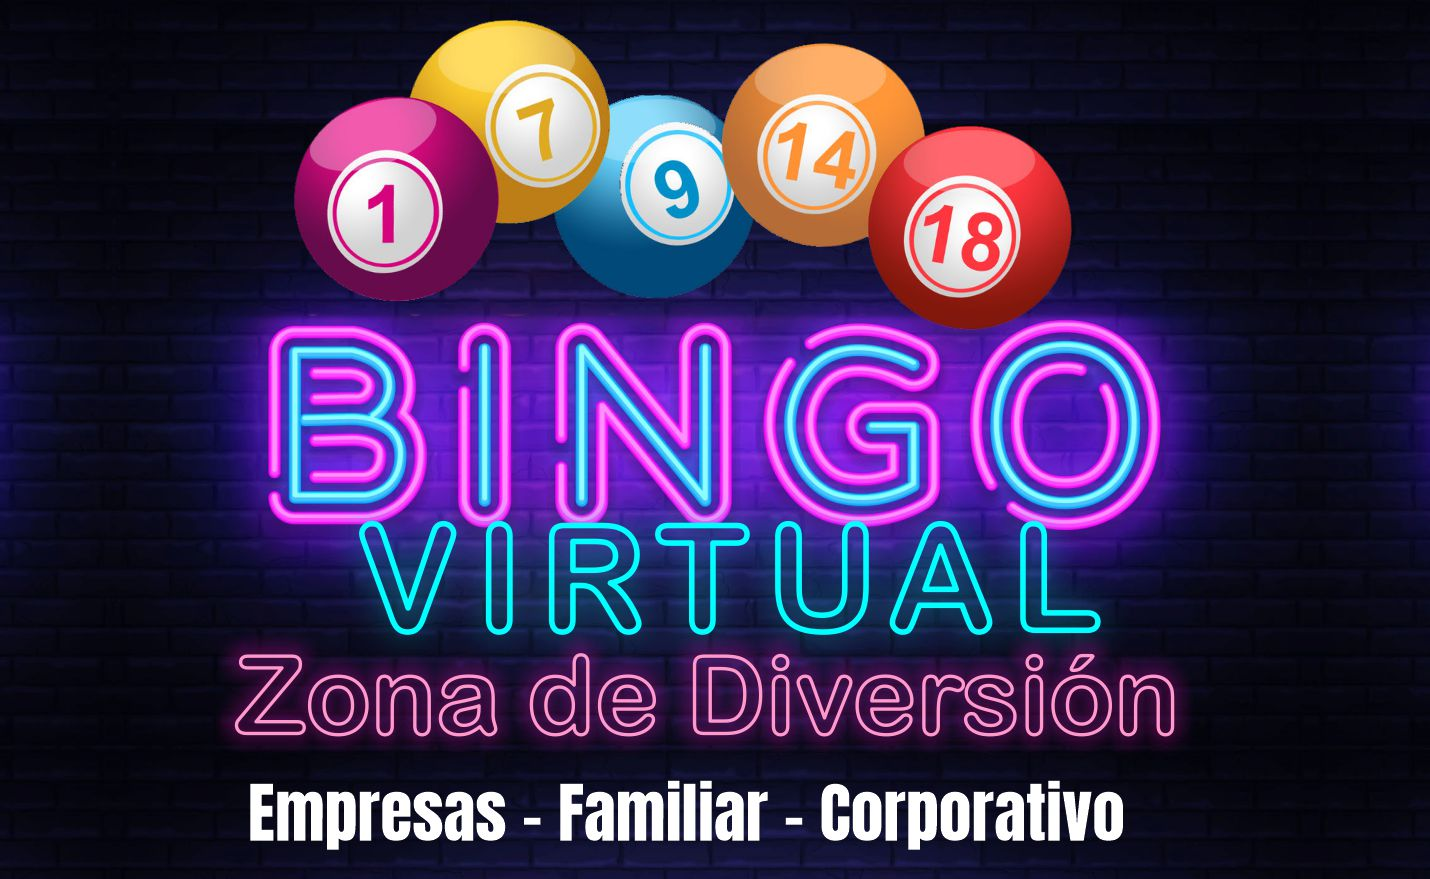 bingos virtuales bogota empresas corporativos premios alquiler bingos streaming shows dj dee jay animacion bingos virtuales bingo virtual eventos